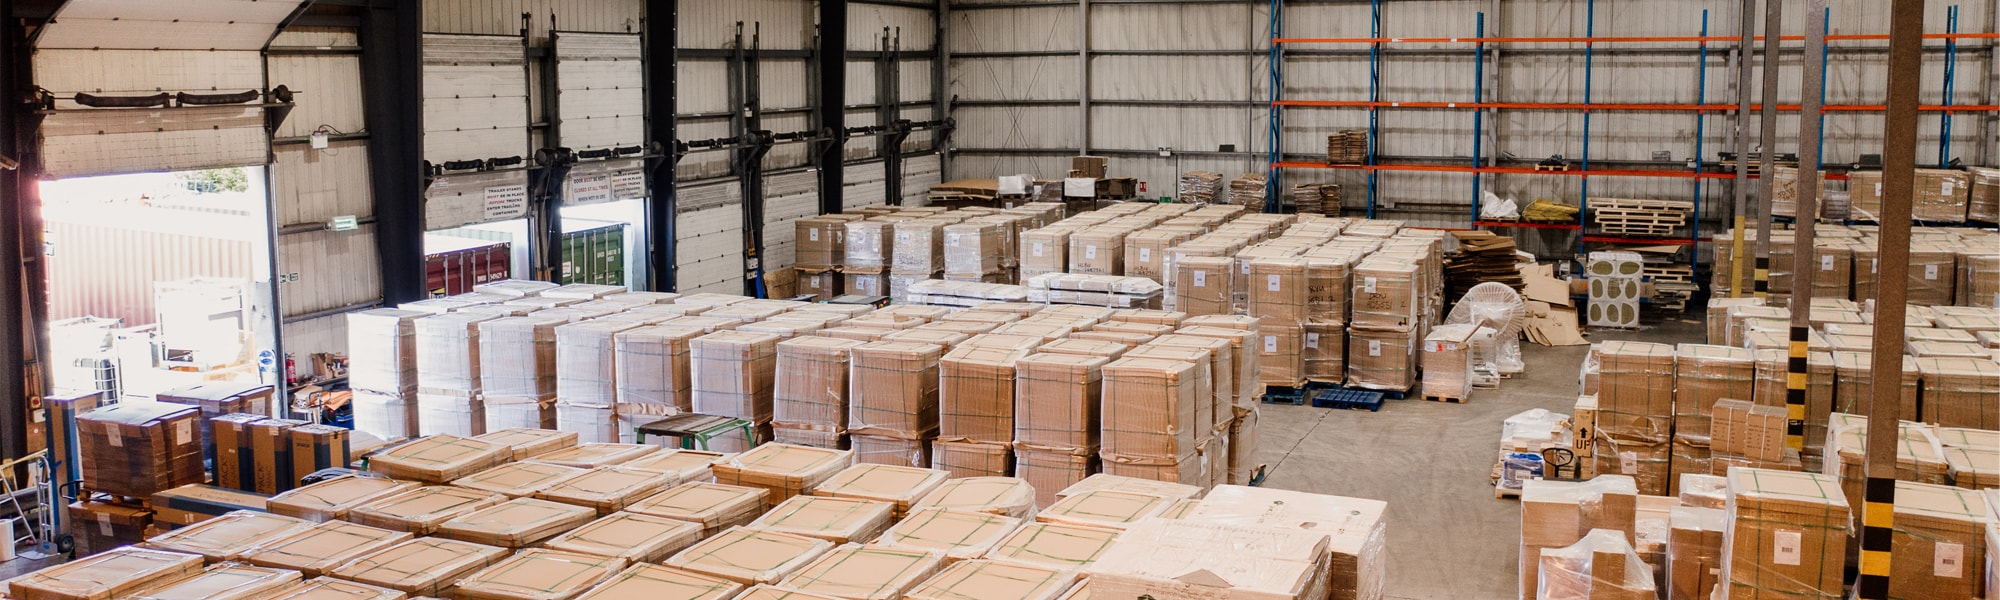 Maintaining Warehouse Safety During and Post-Lockdown